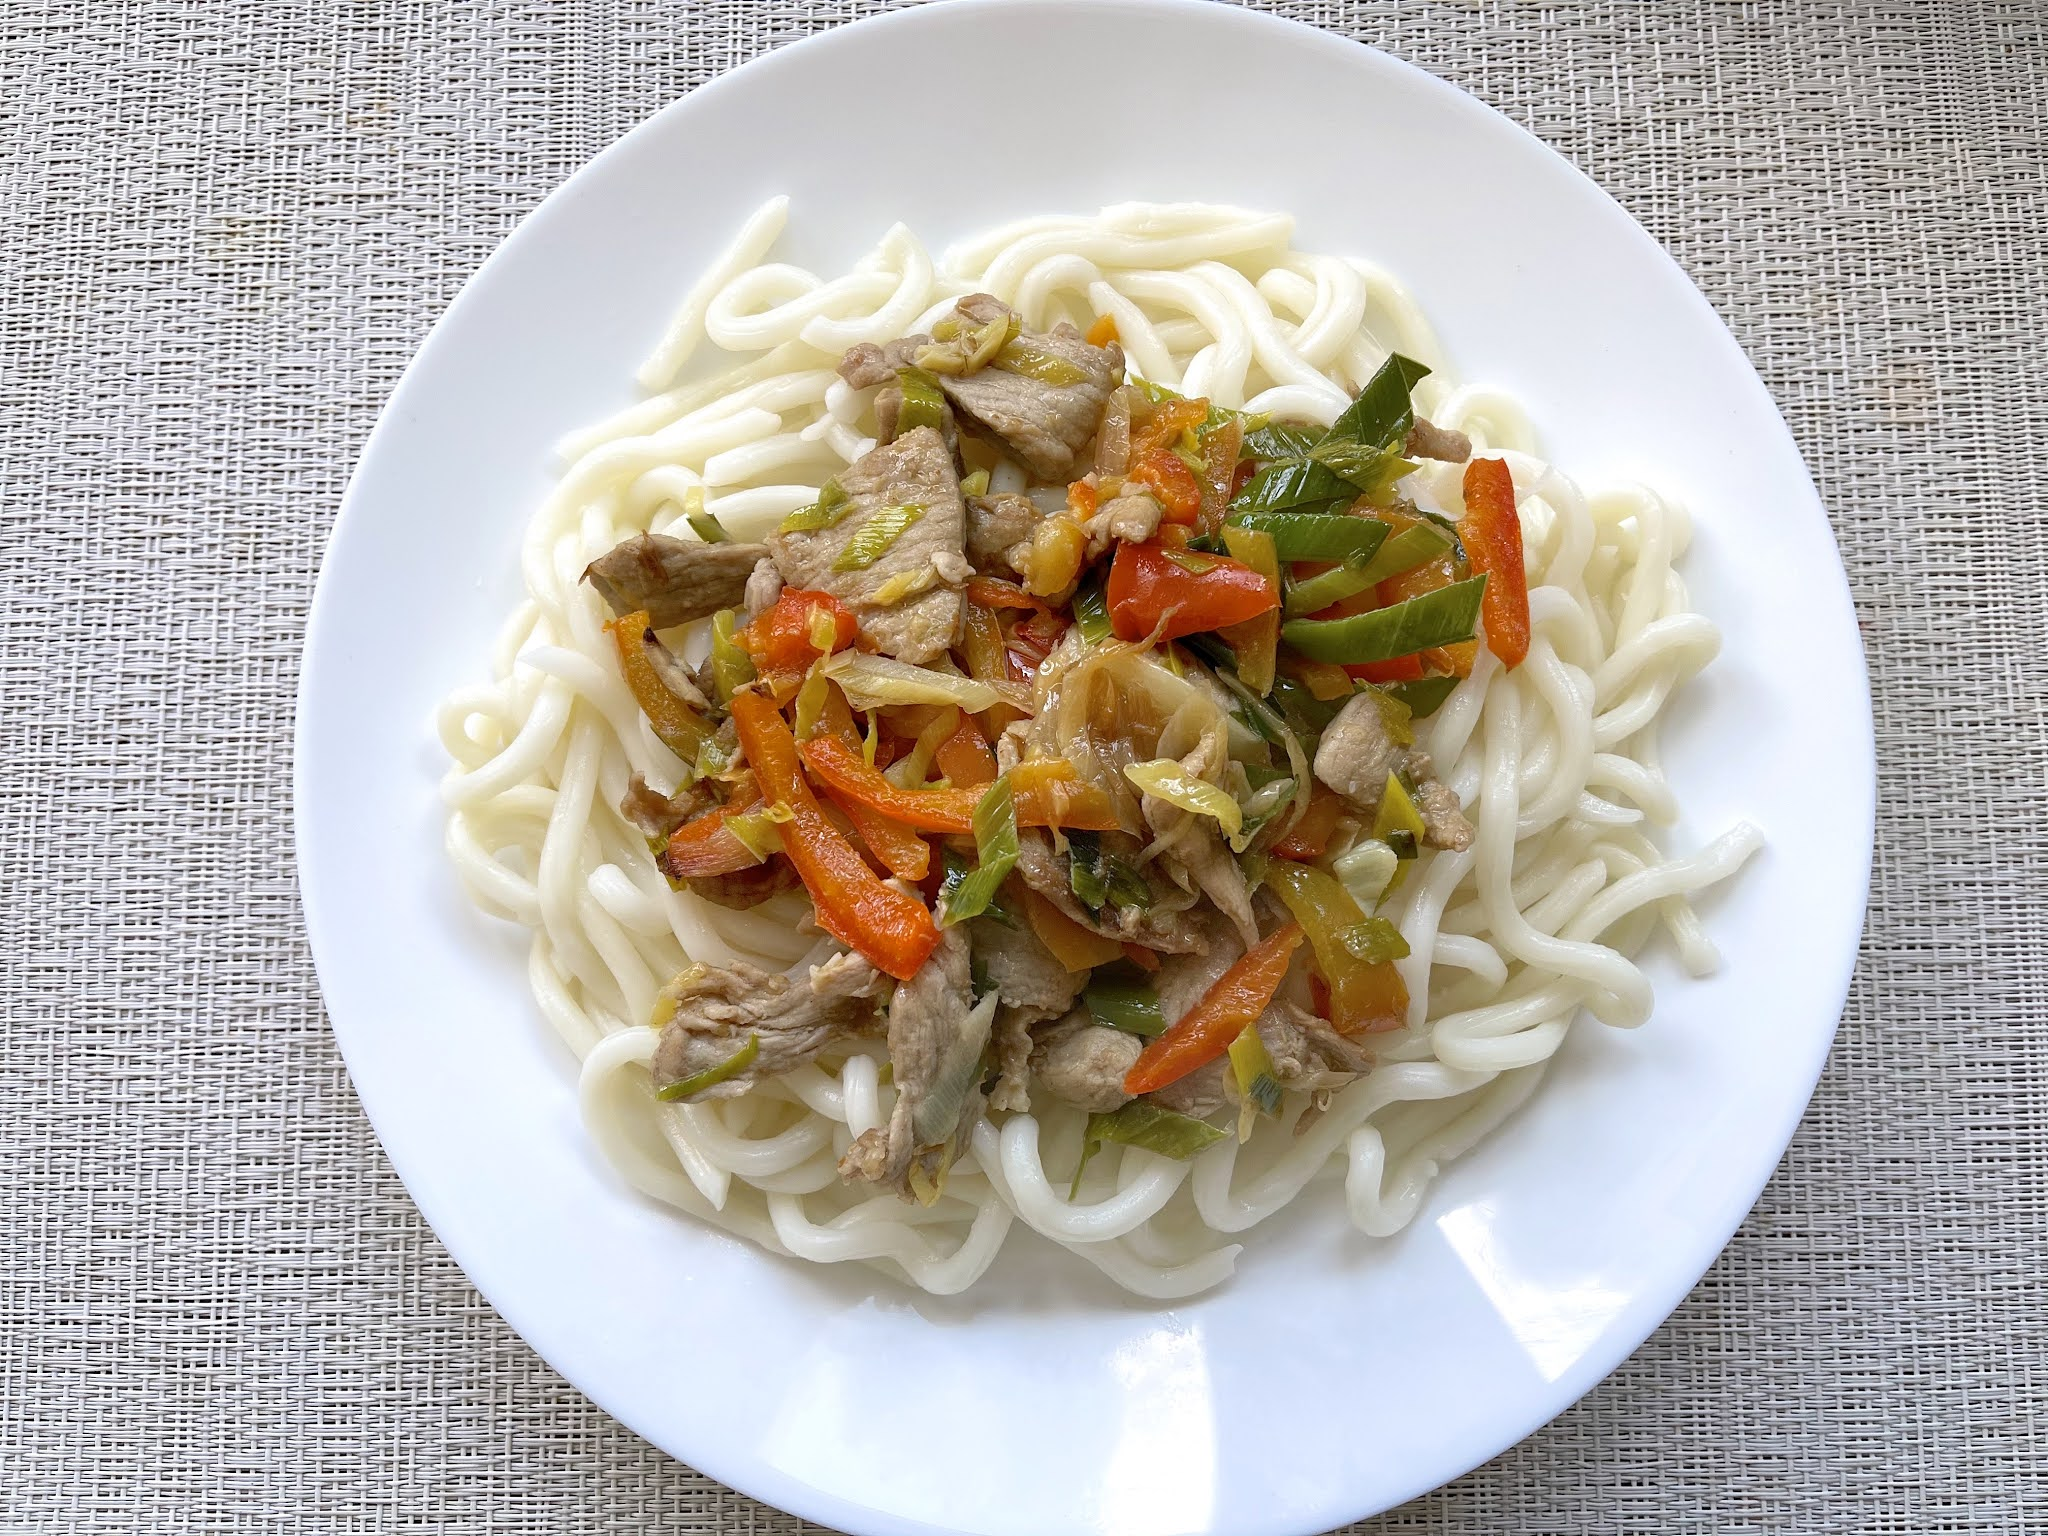 Chinese-Confinement-Recipes-Pork-Pepper-Leek-Stir-Fry-with-Udon